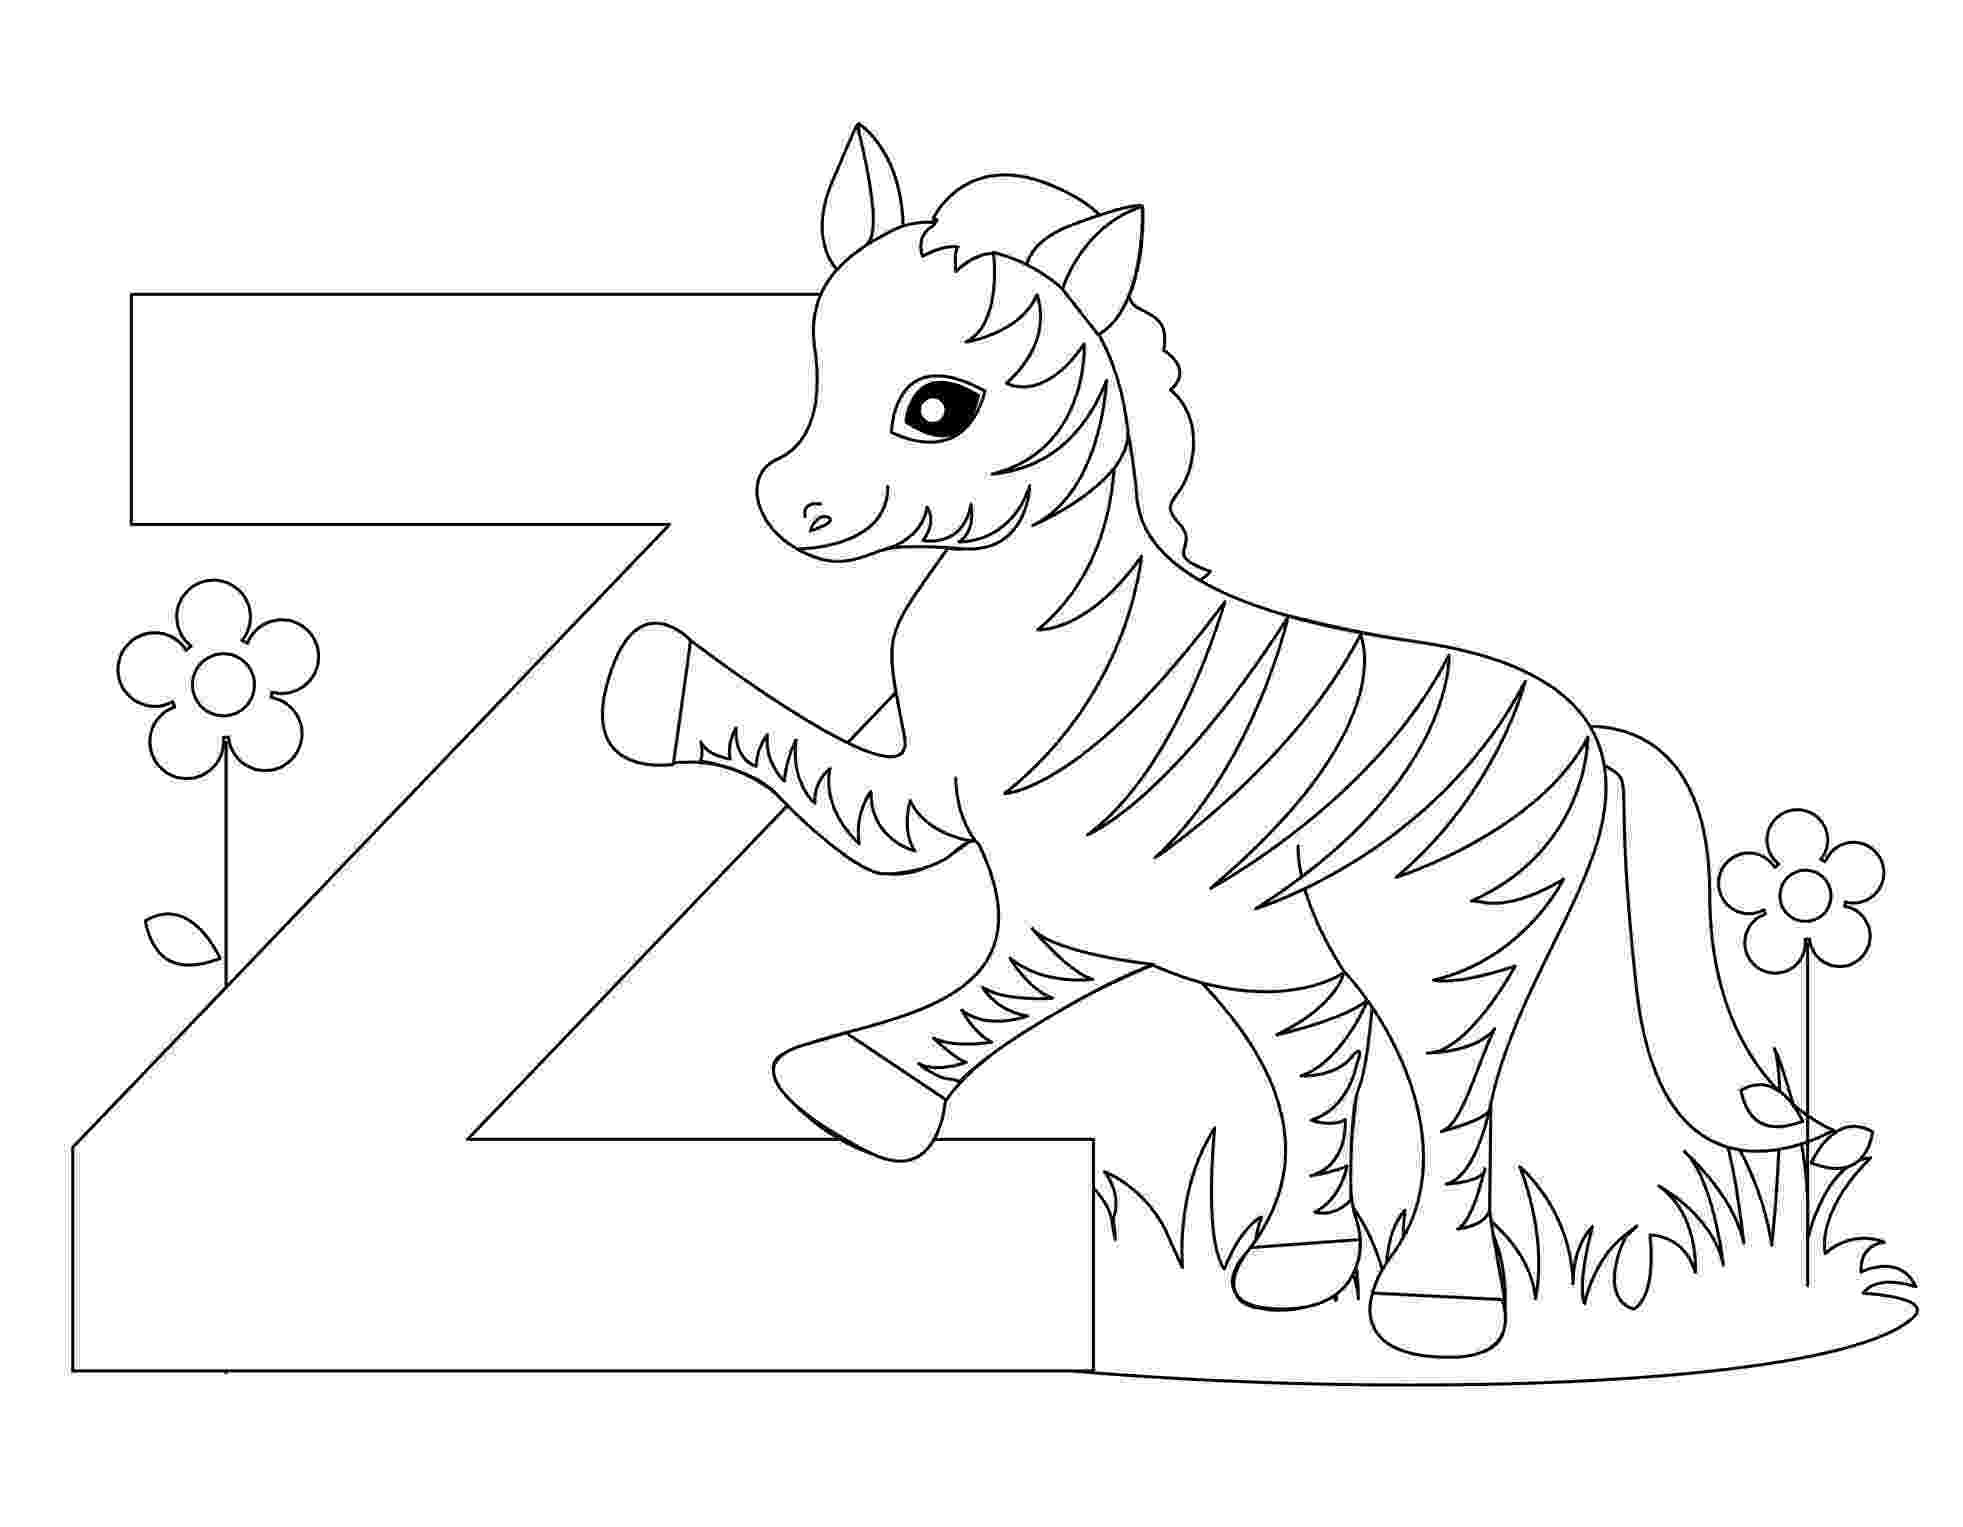 abc coloring sheets free printable abc coloring pages for kids sheets coloring abc